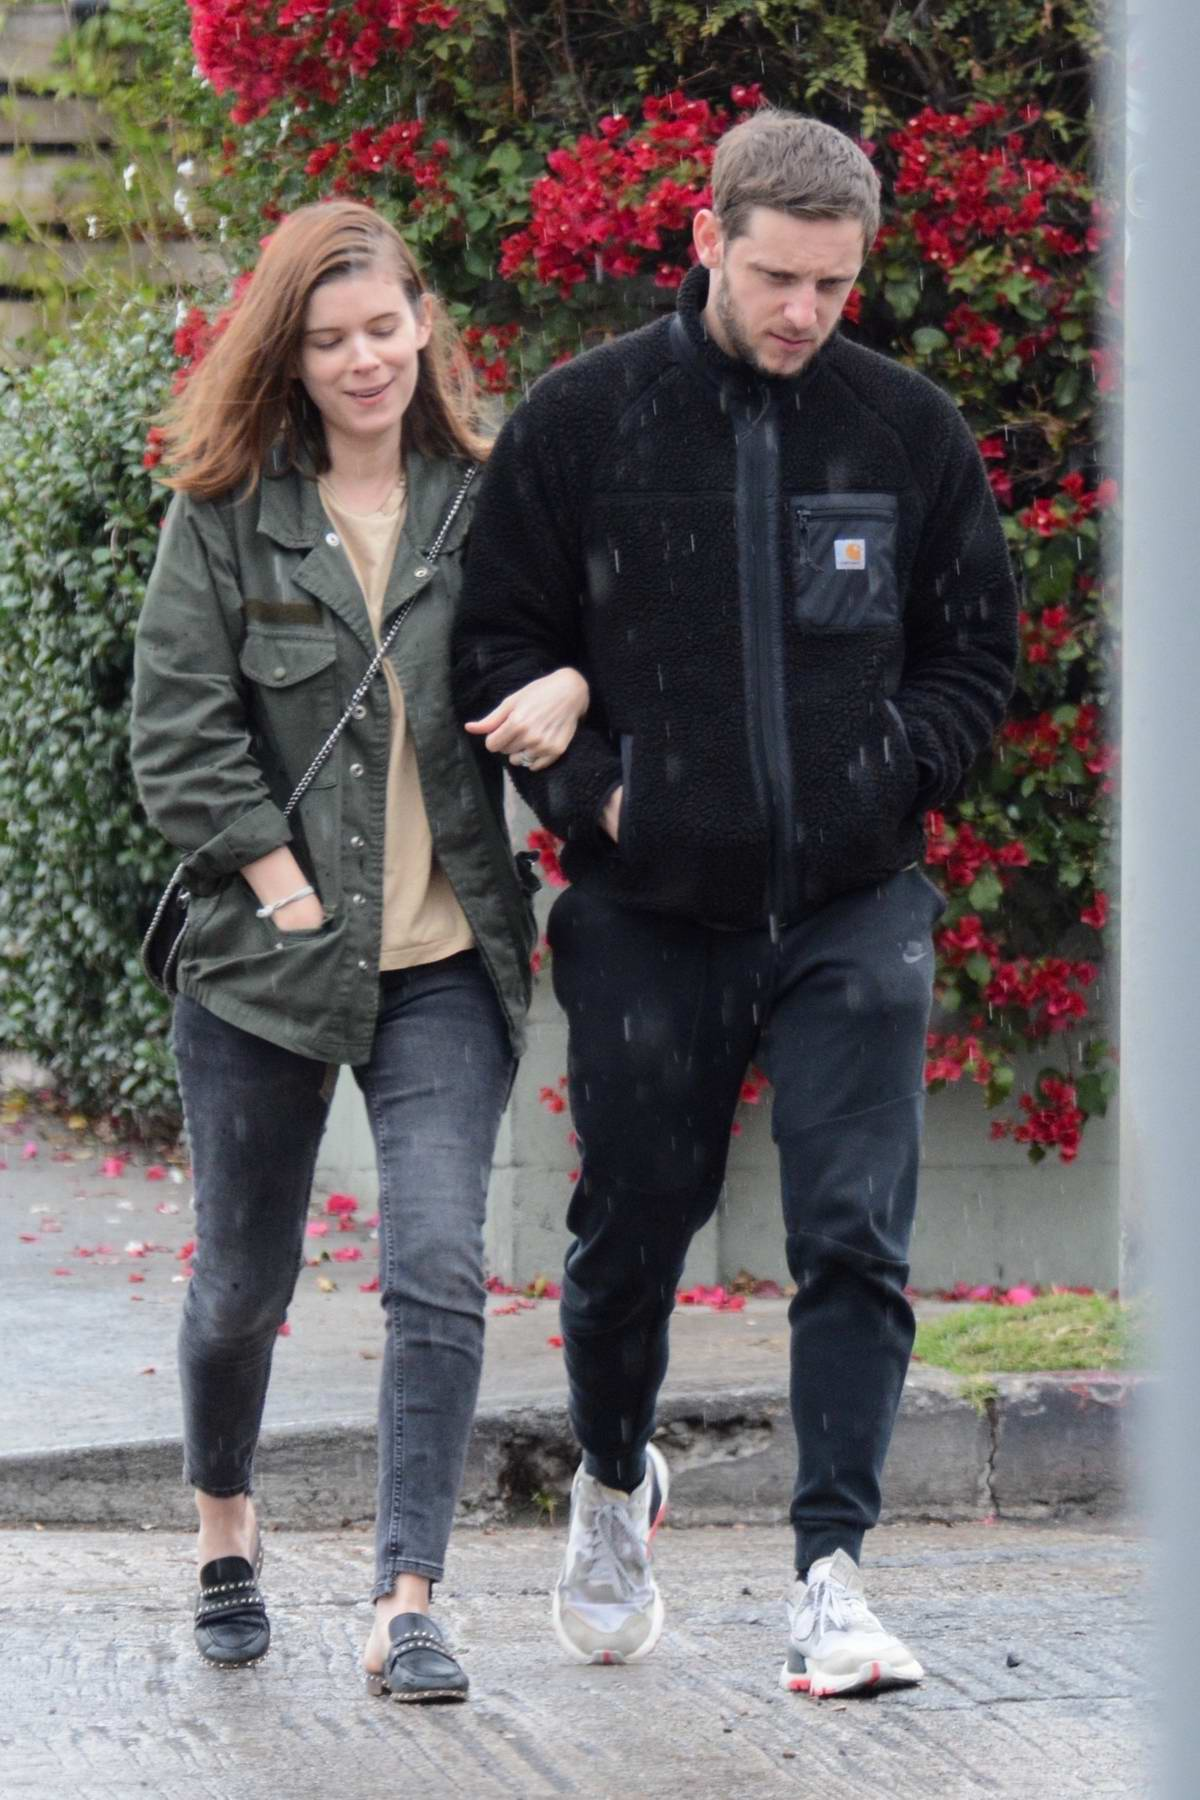 Kate Mara and Jamie Bell step out for a stroll on a rainy day in Los Angeles